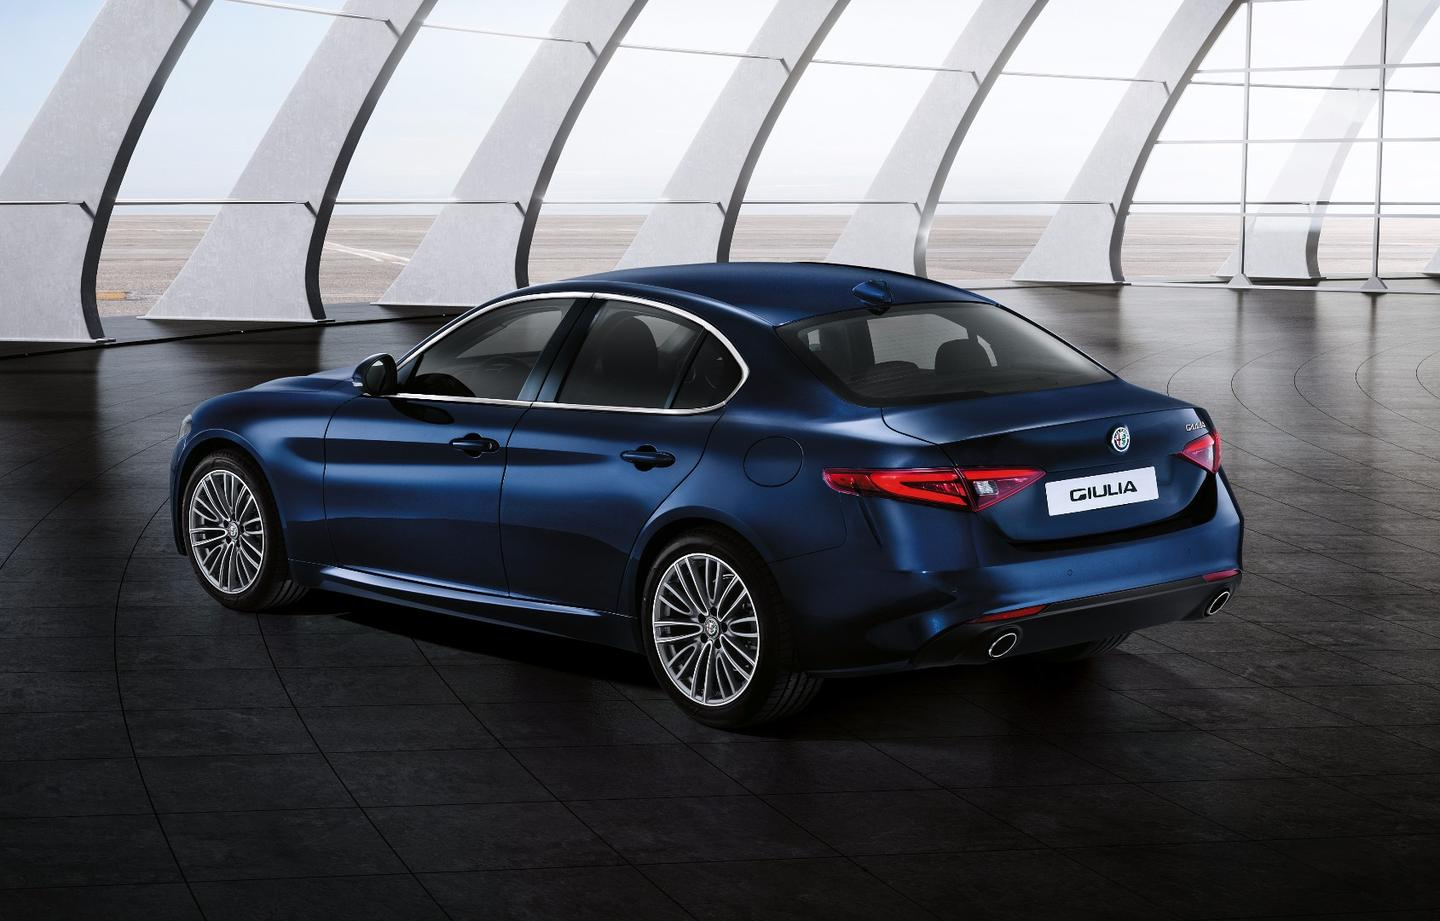 The Alfa Romeo Giulia is pitched into battle with some serious competition